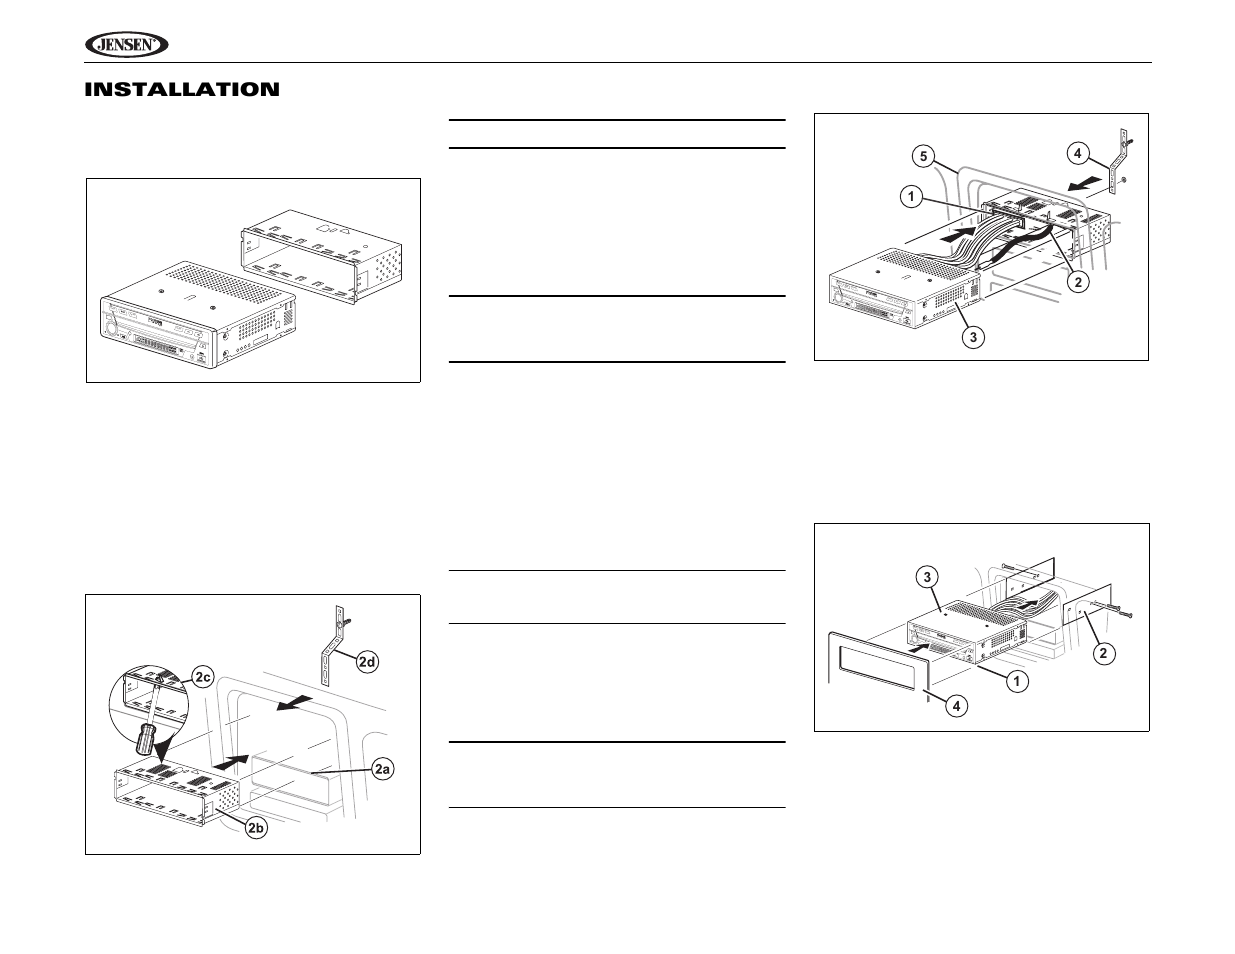 jensen uv9 page8 jensen uv9 user manual page 8 84 jensen phase linear uv9 wiring diagram at bakdesigns.co